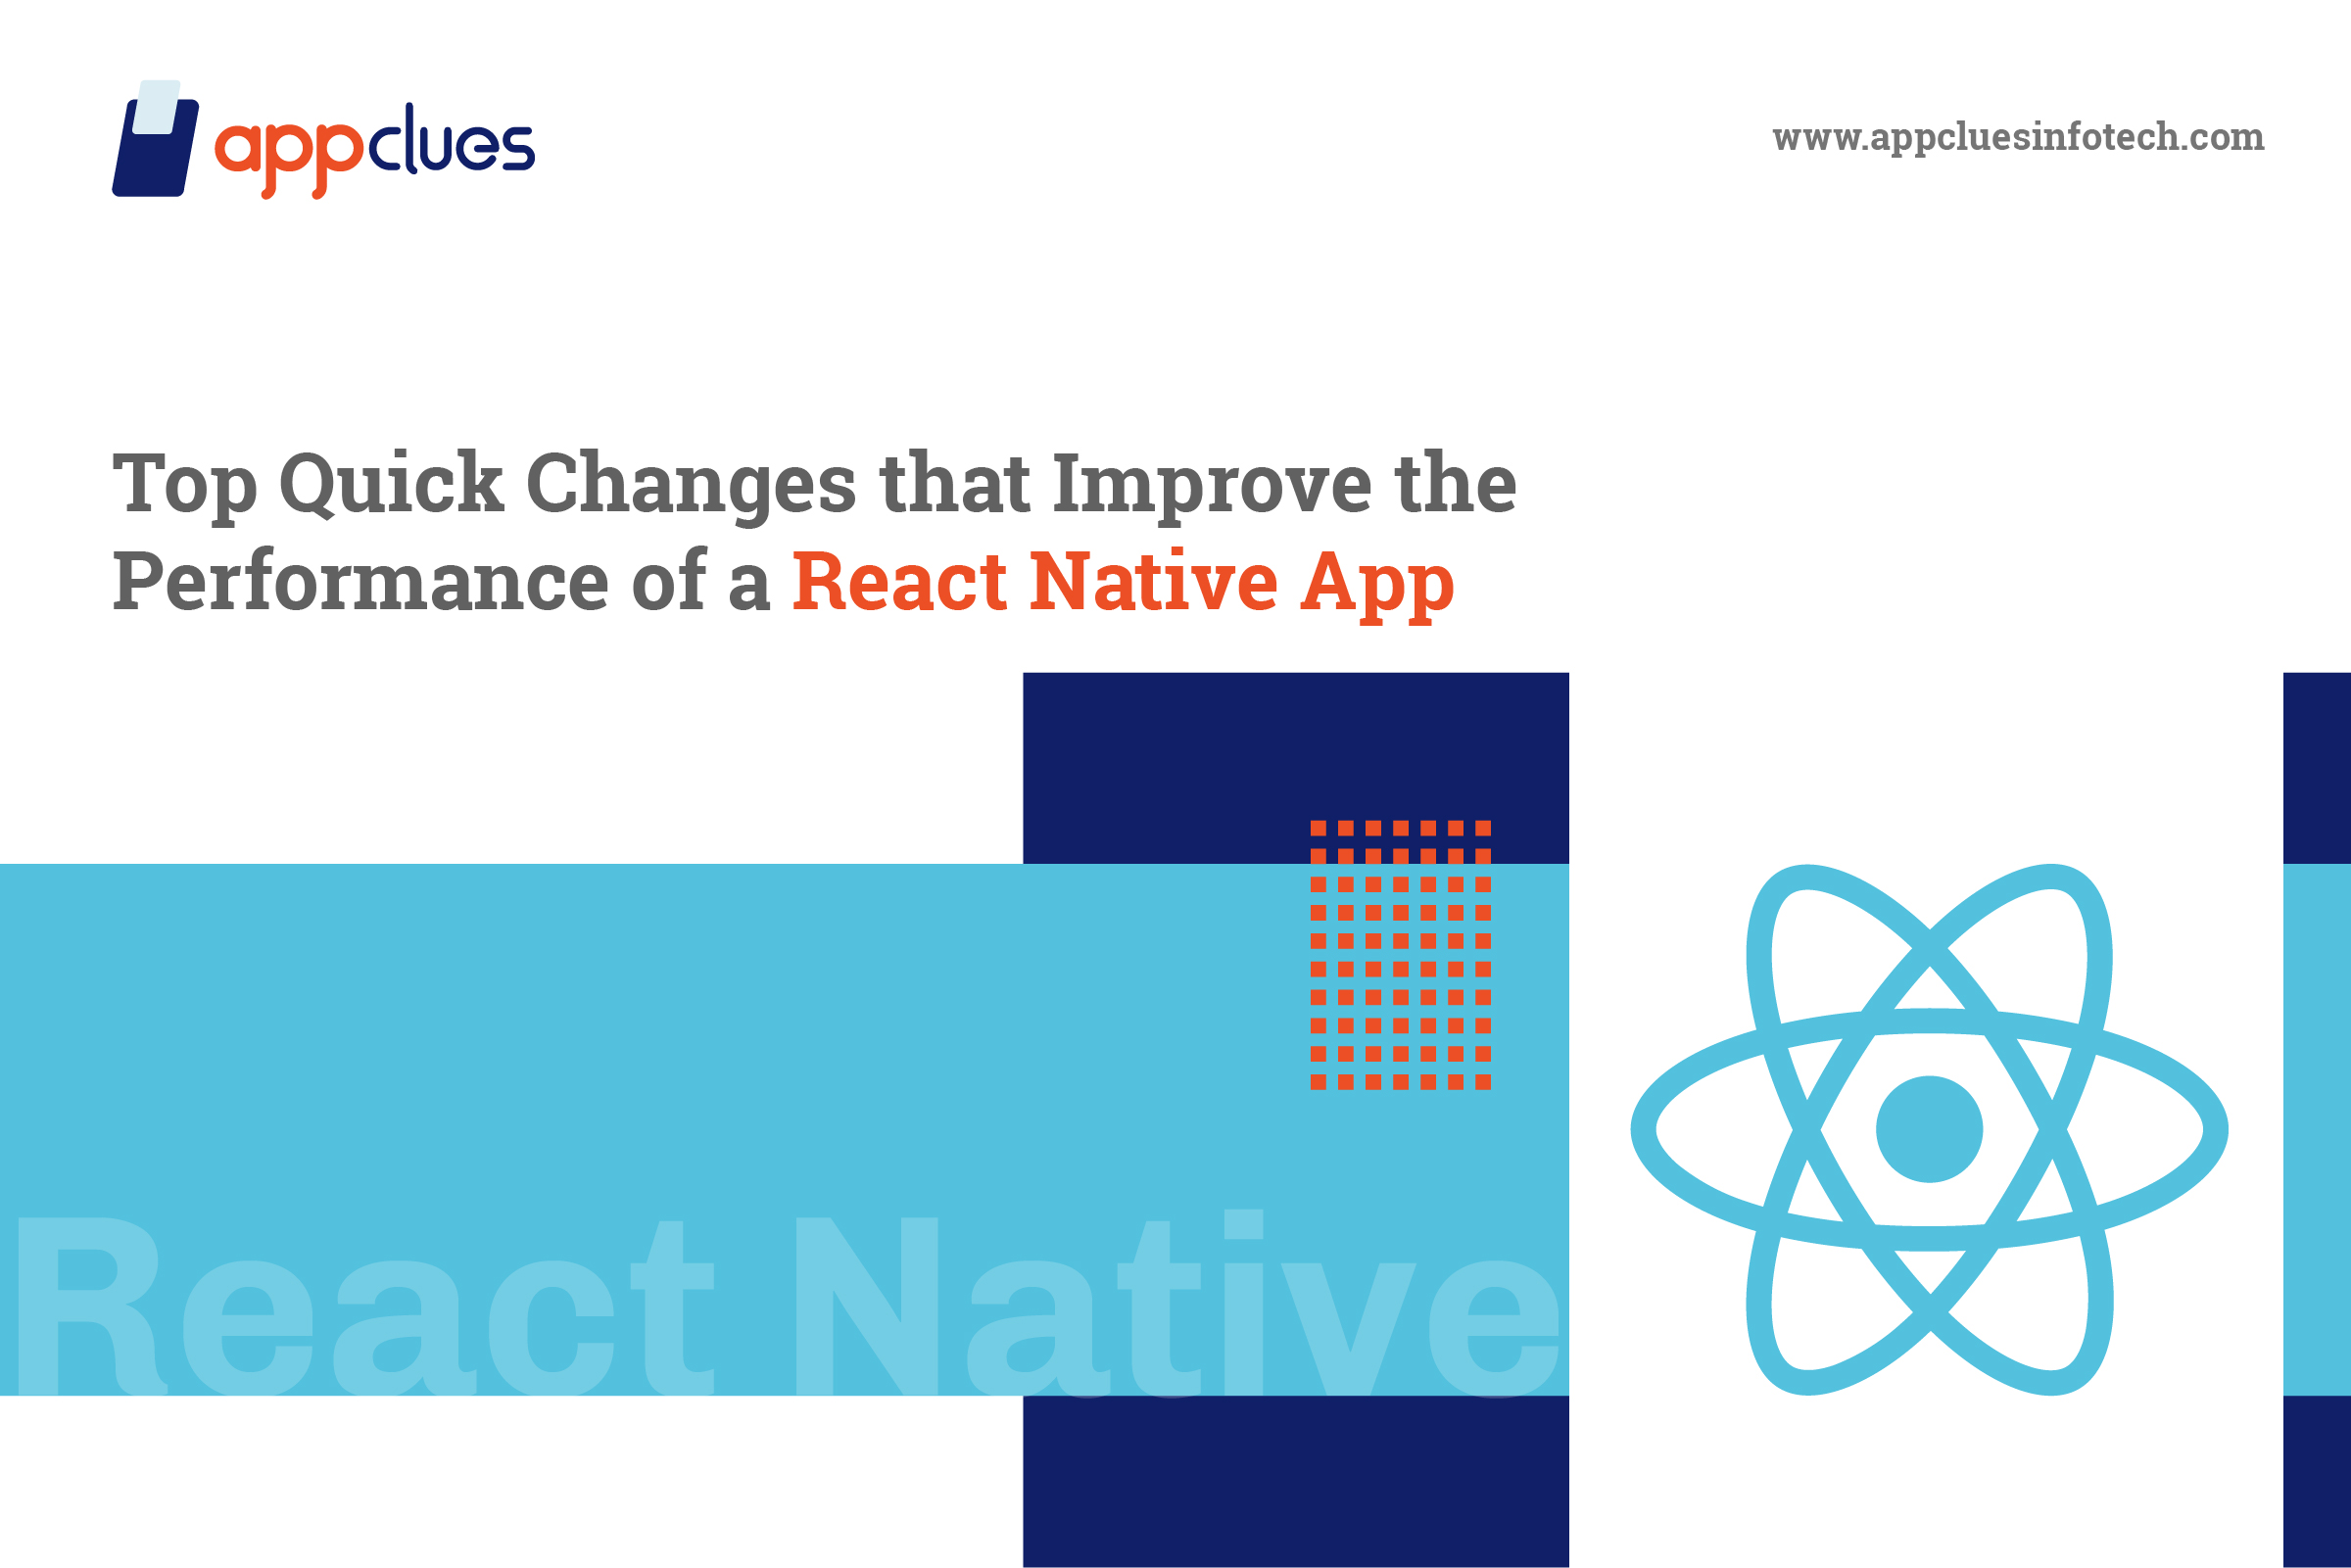 Top Quick Changes that improve the performance of a react native app